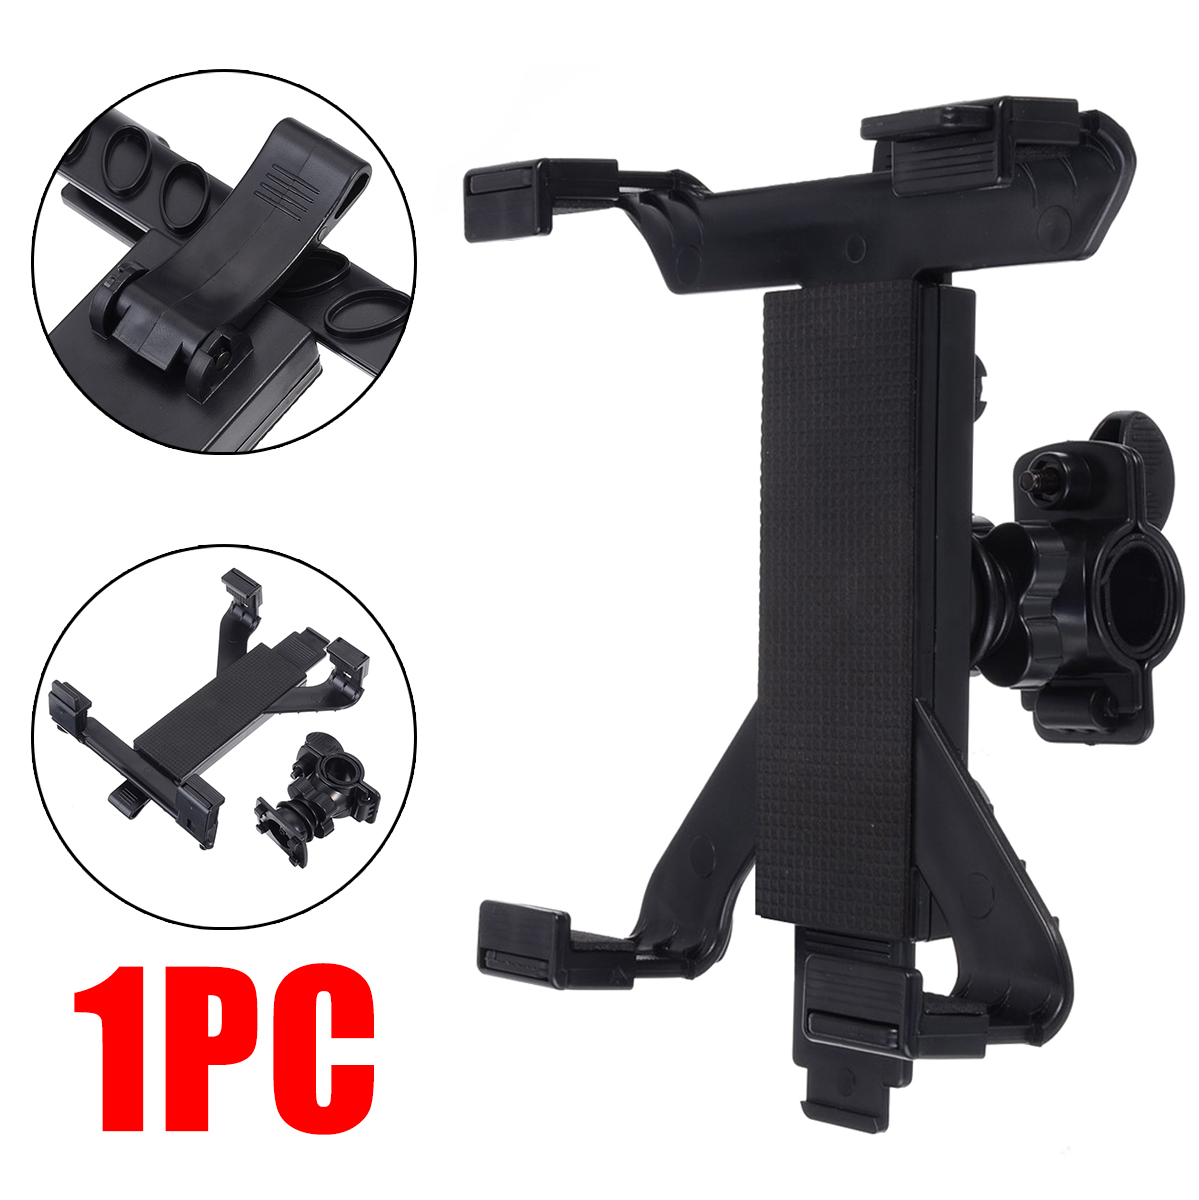 Computer Accessories 1pc Black Music Microphone Stand Holder Universal Mic Tablet Mount For iPad 4 3 2 for Samsung Tab 7-11""